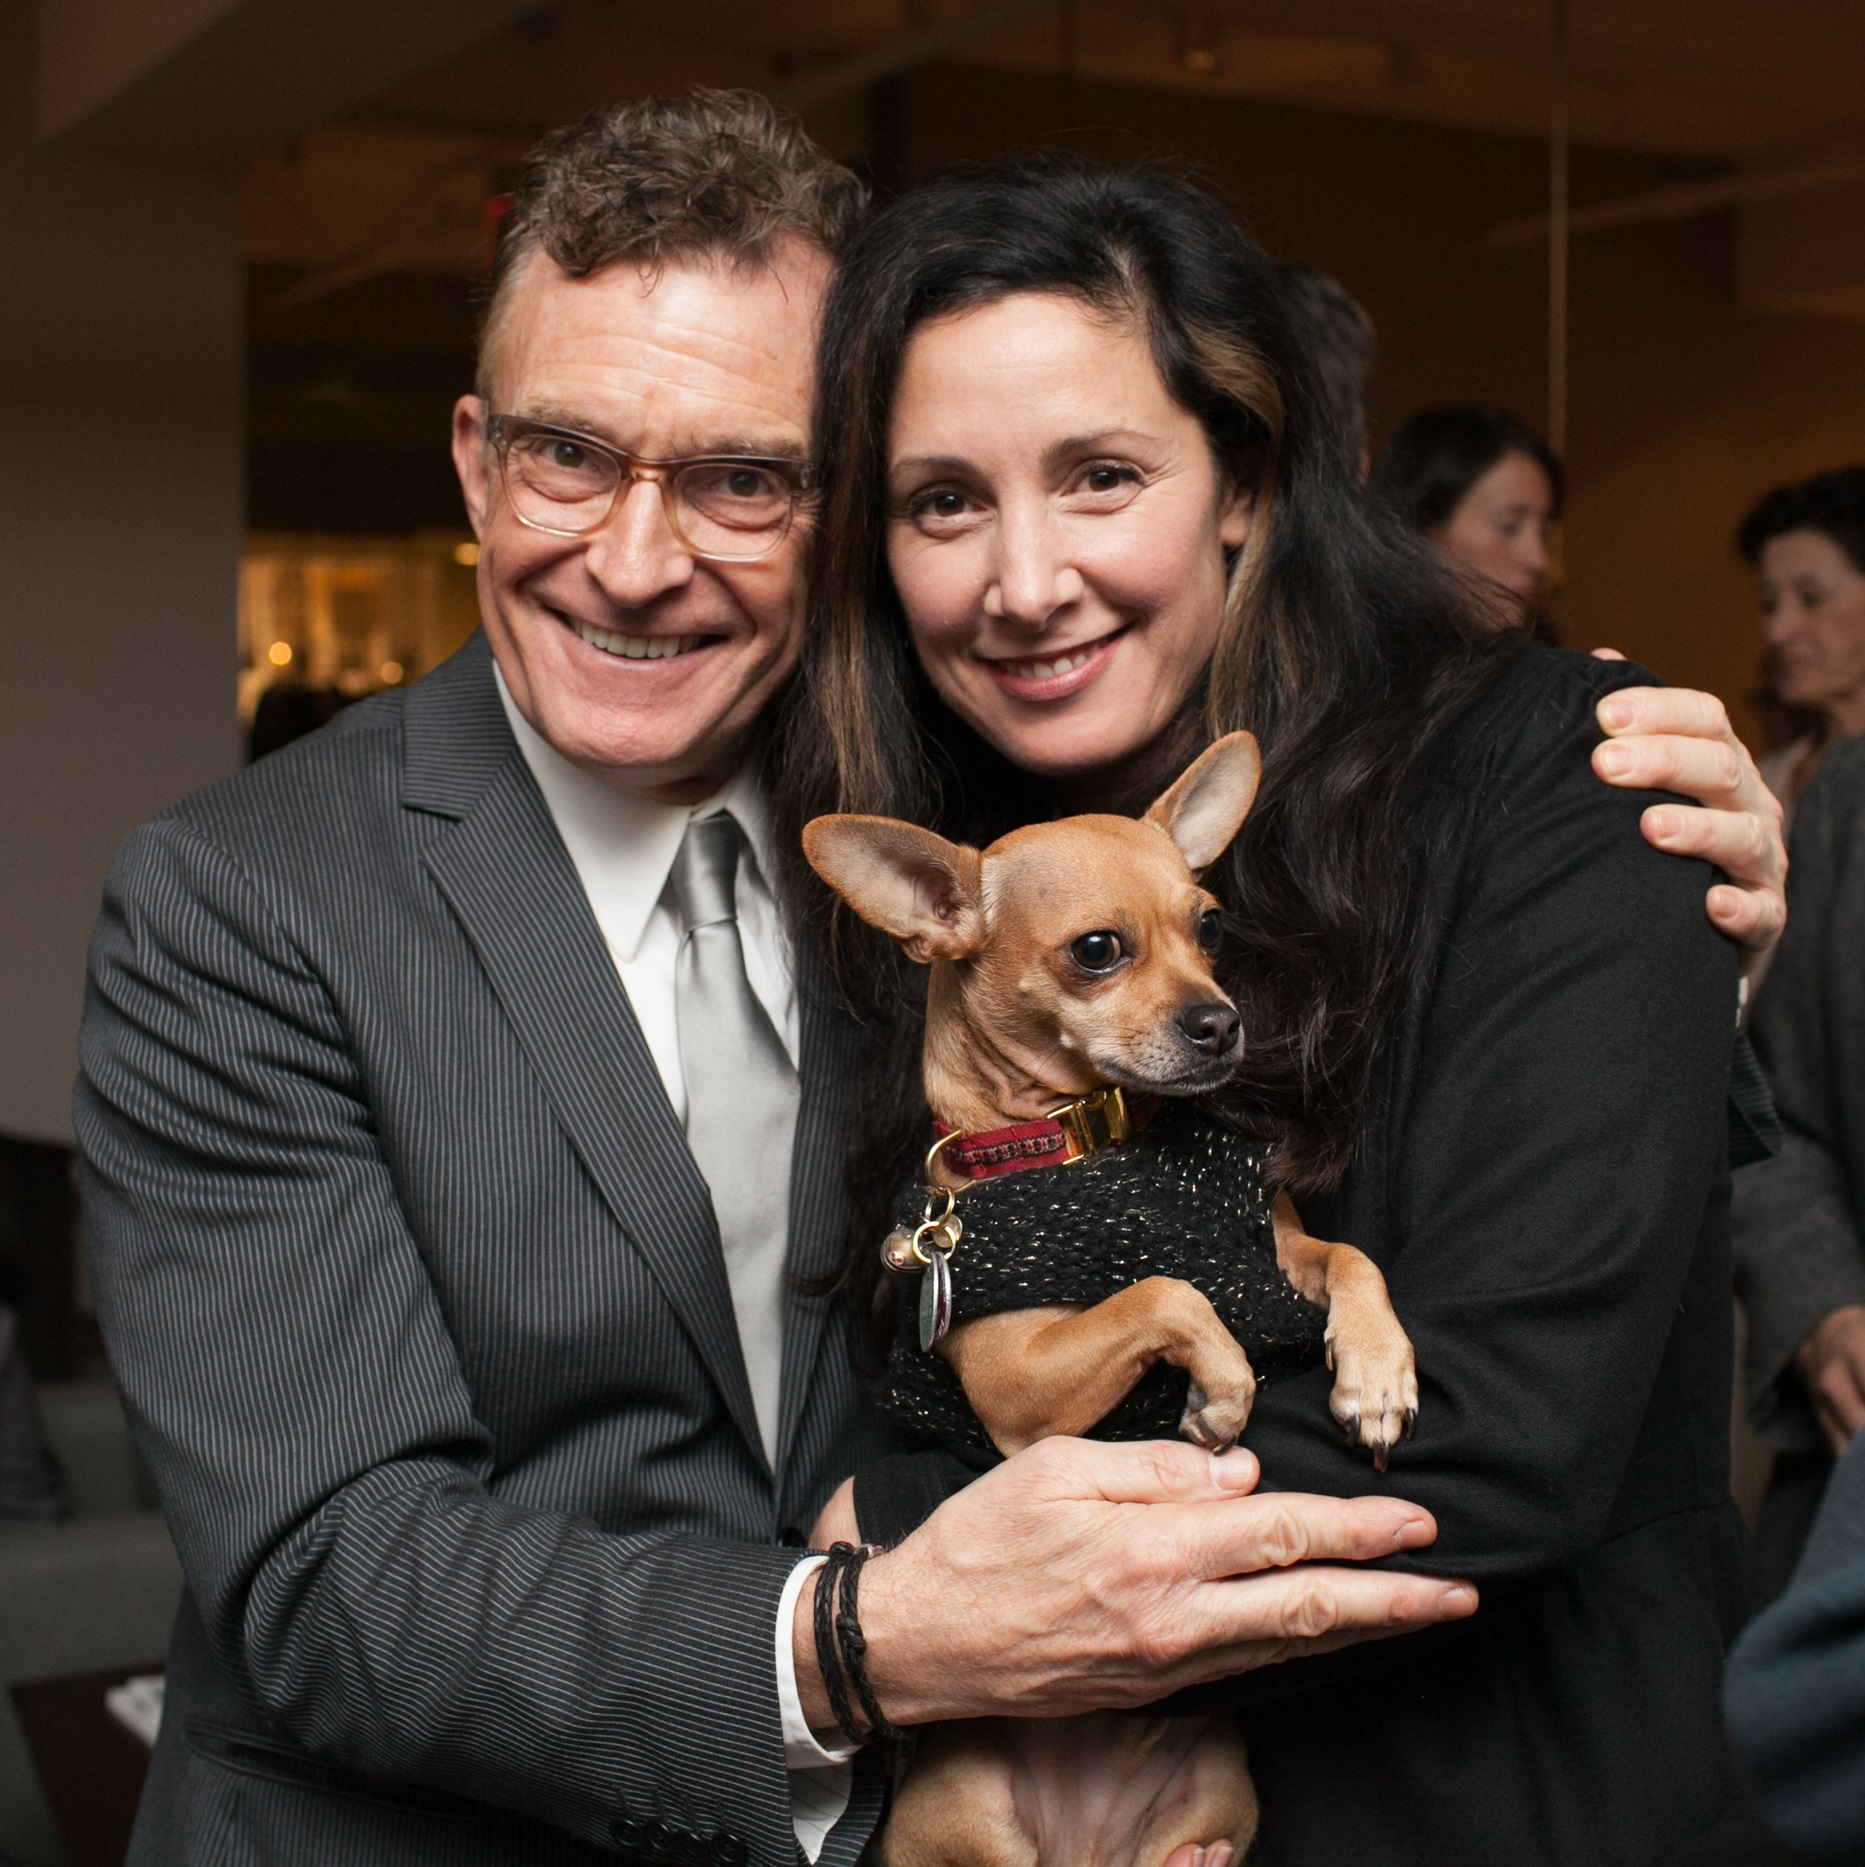 Glenn Gissler with Laura Kirar and the pup Michu